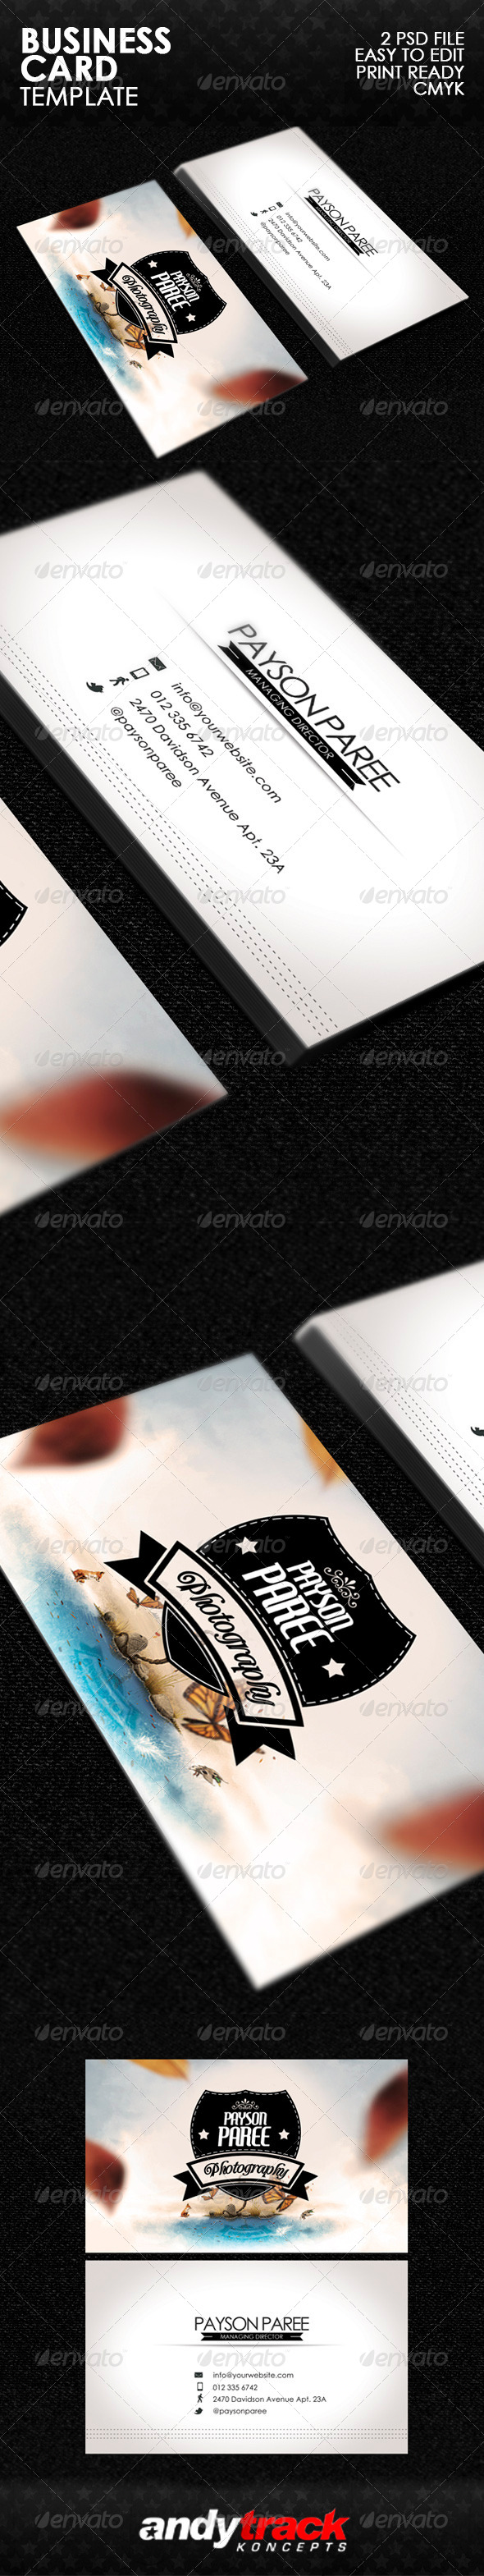 GraphicRiver Greatest Business Card Template v.1 5145170